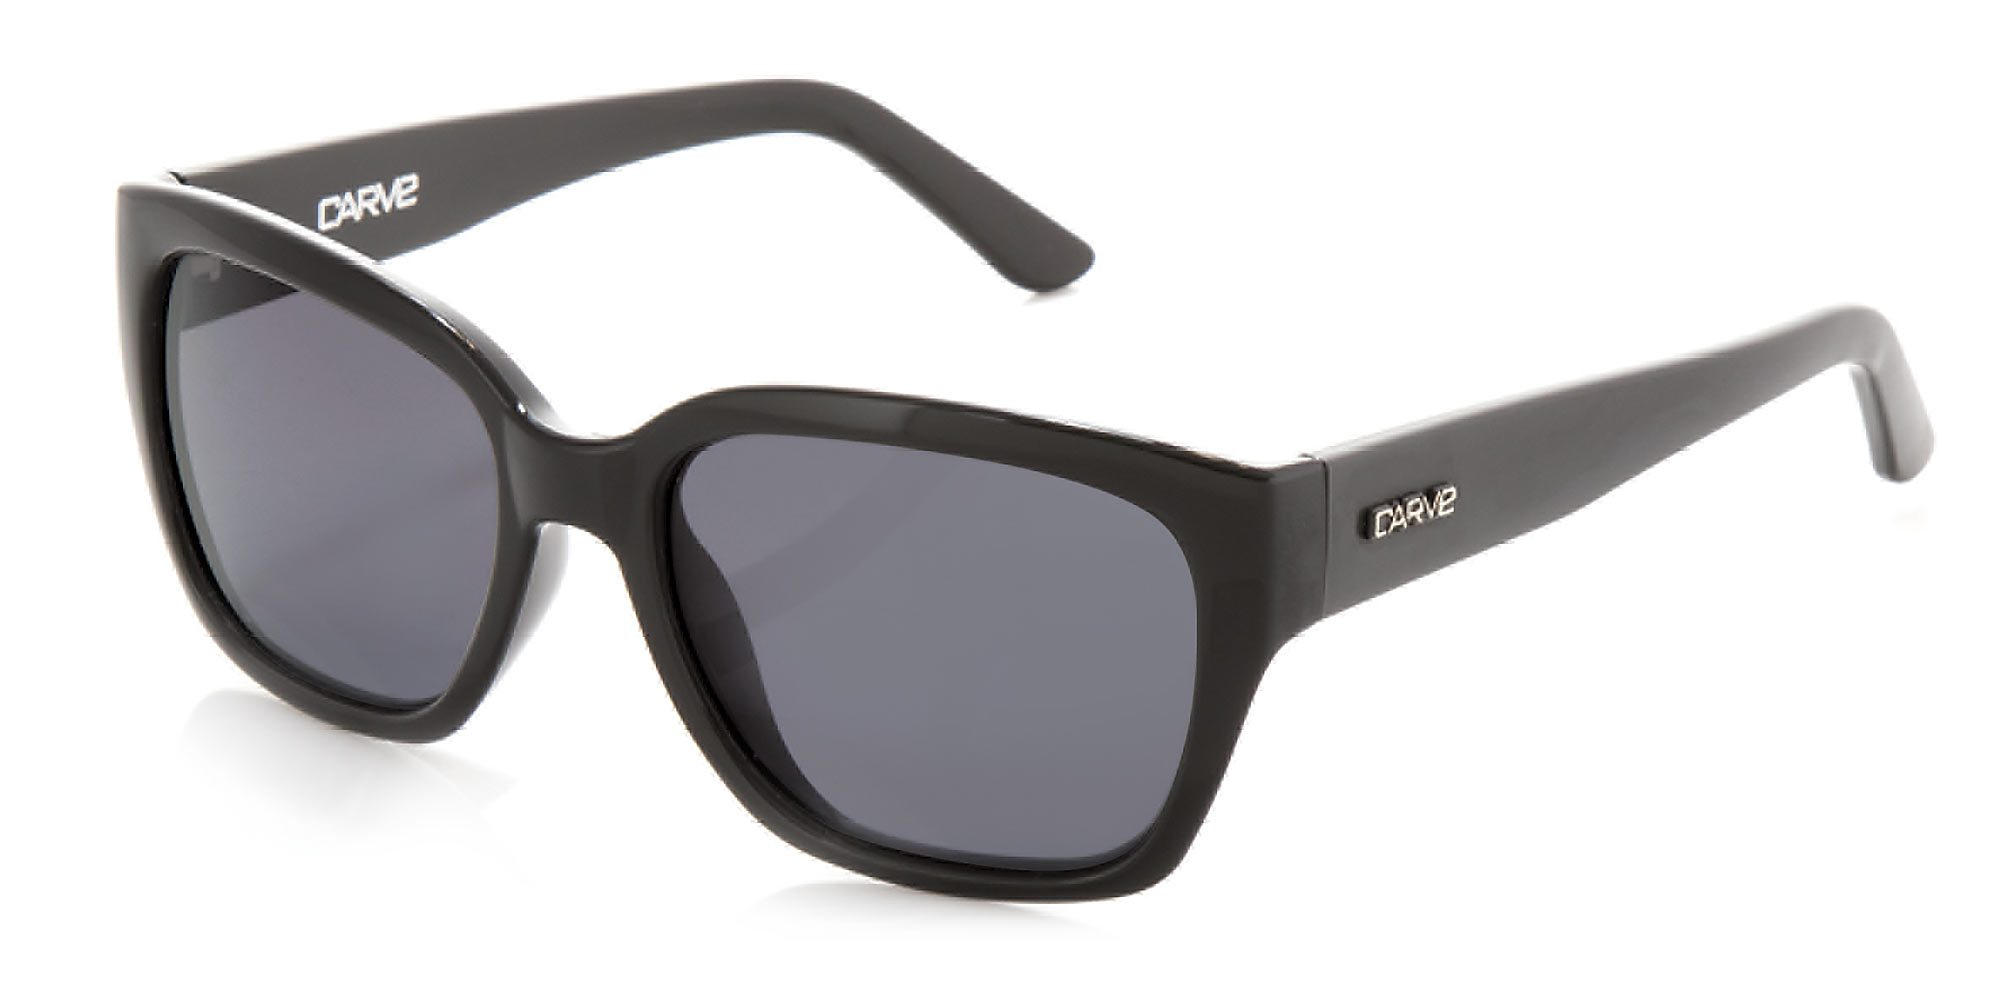 Carve Scarlett Polarized Sunglasses